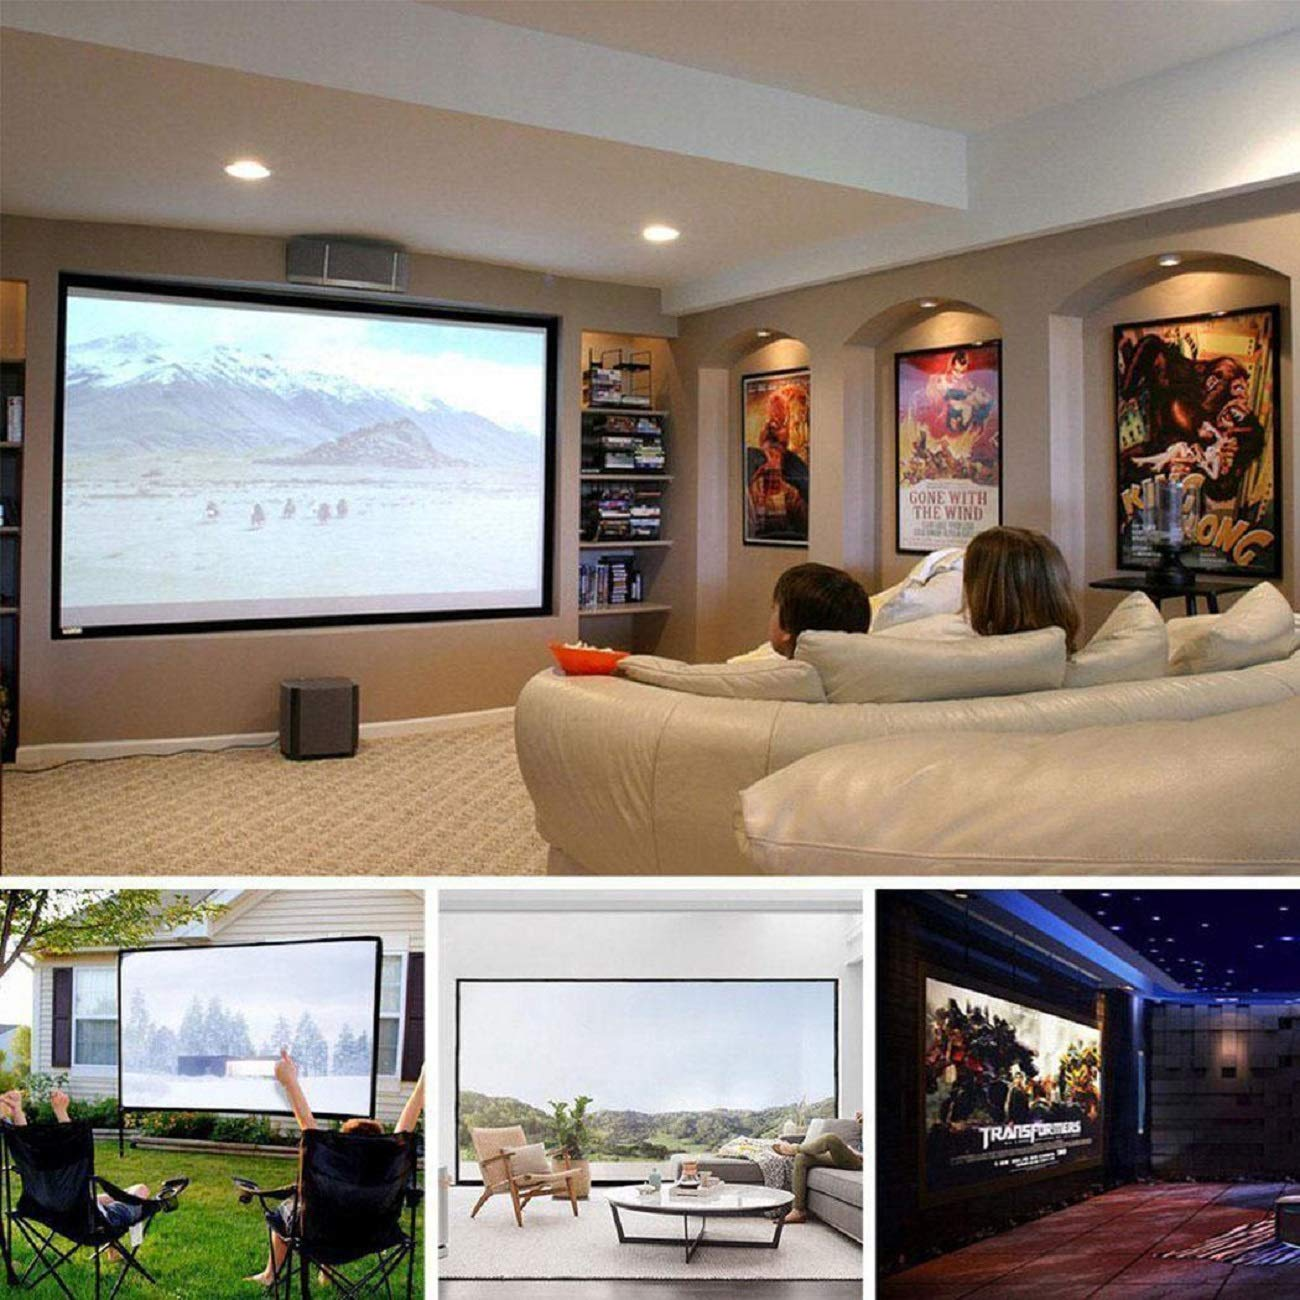 Kindsells Foldable Anti-Crease for Home Theater Indoor Outdoor Projector Movie Screen Projection Screens by Kindsells